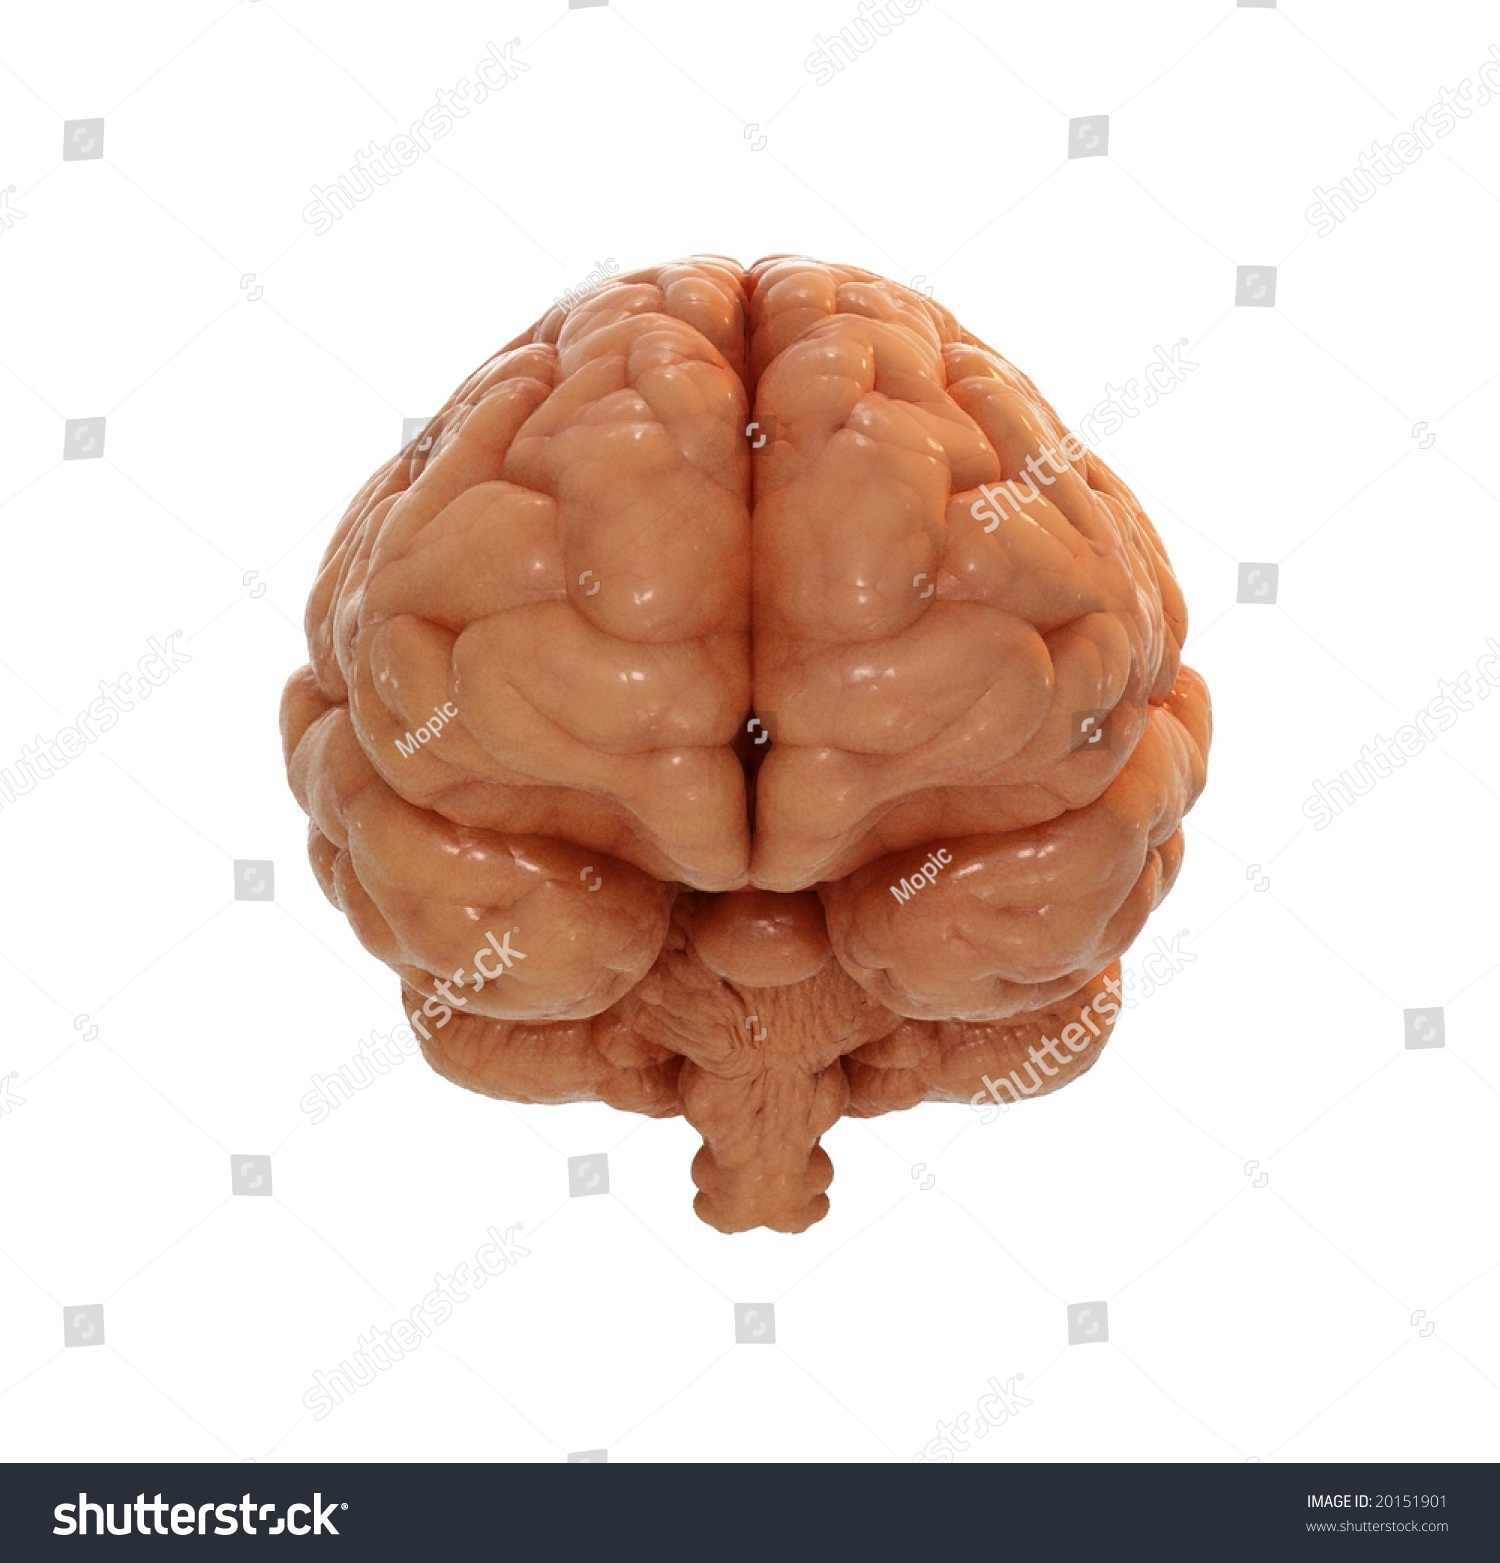 human brain front view stock illustration 20151901 Artery Clip Art Artery Clip Art